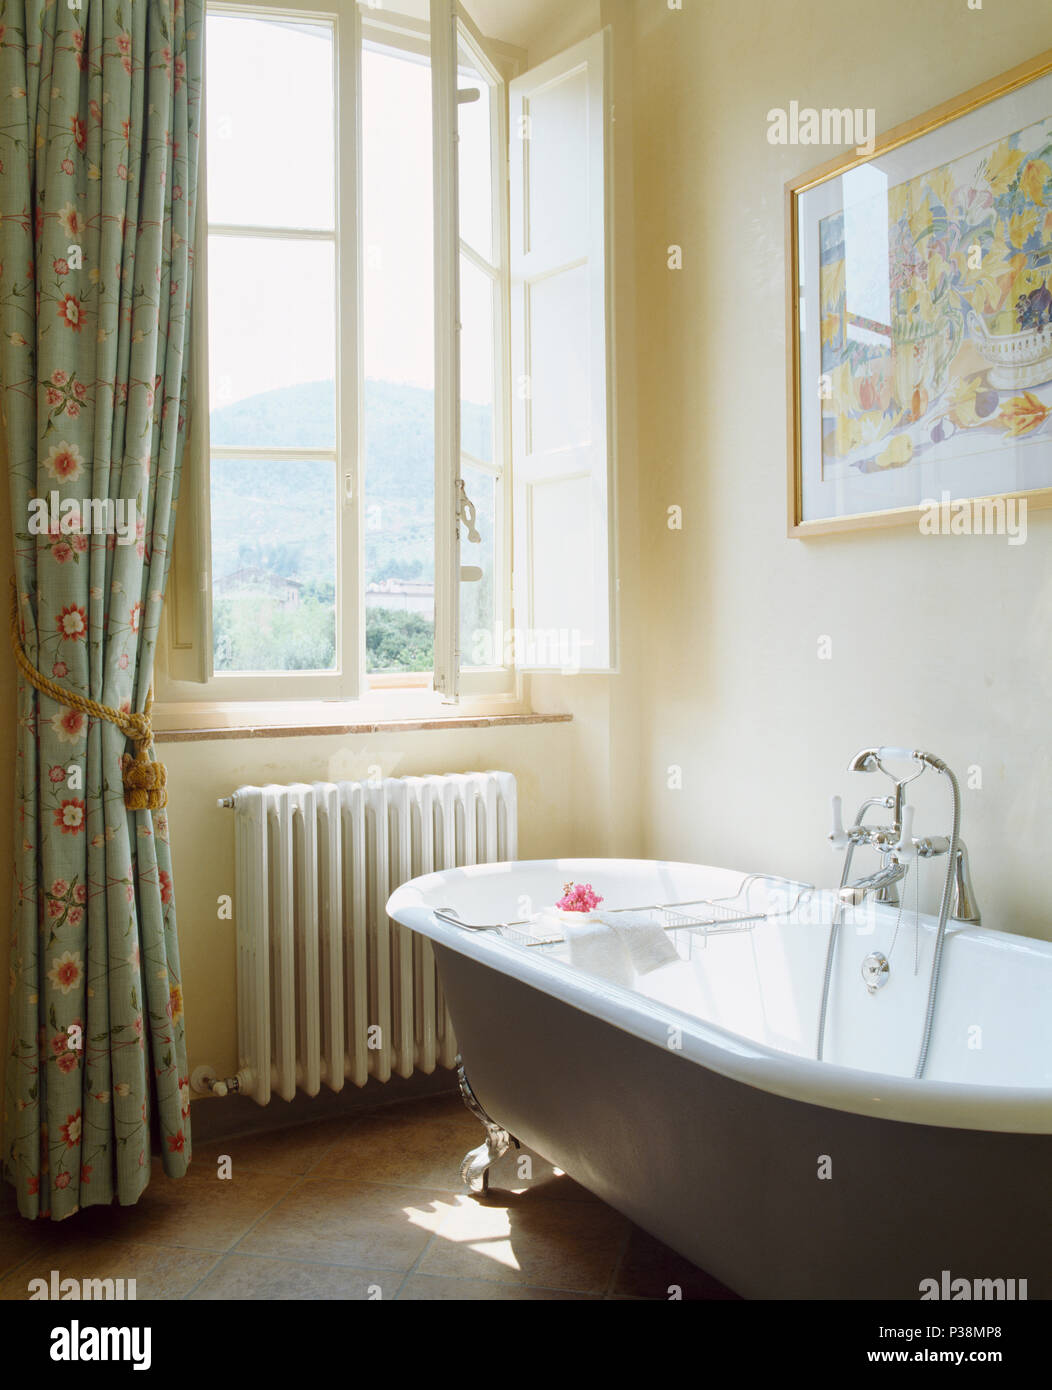 Roll-top bath in Tuscan bathroom with patterned pale blue curtains ...